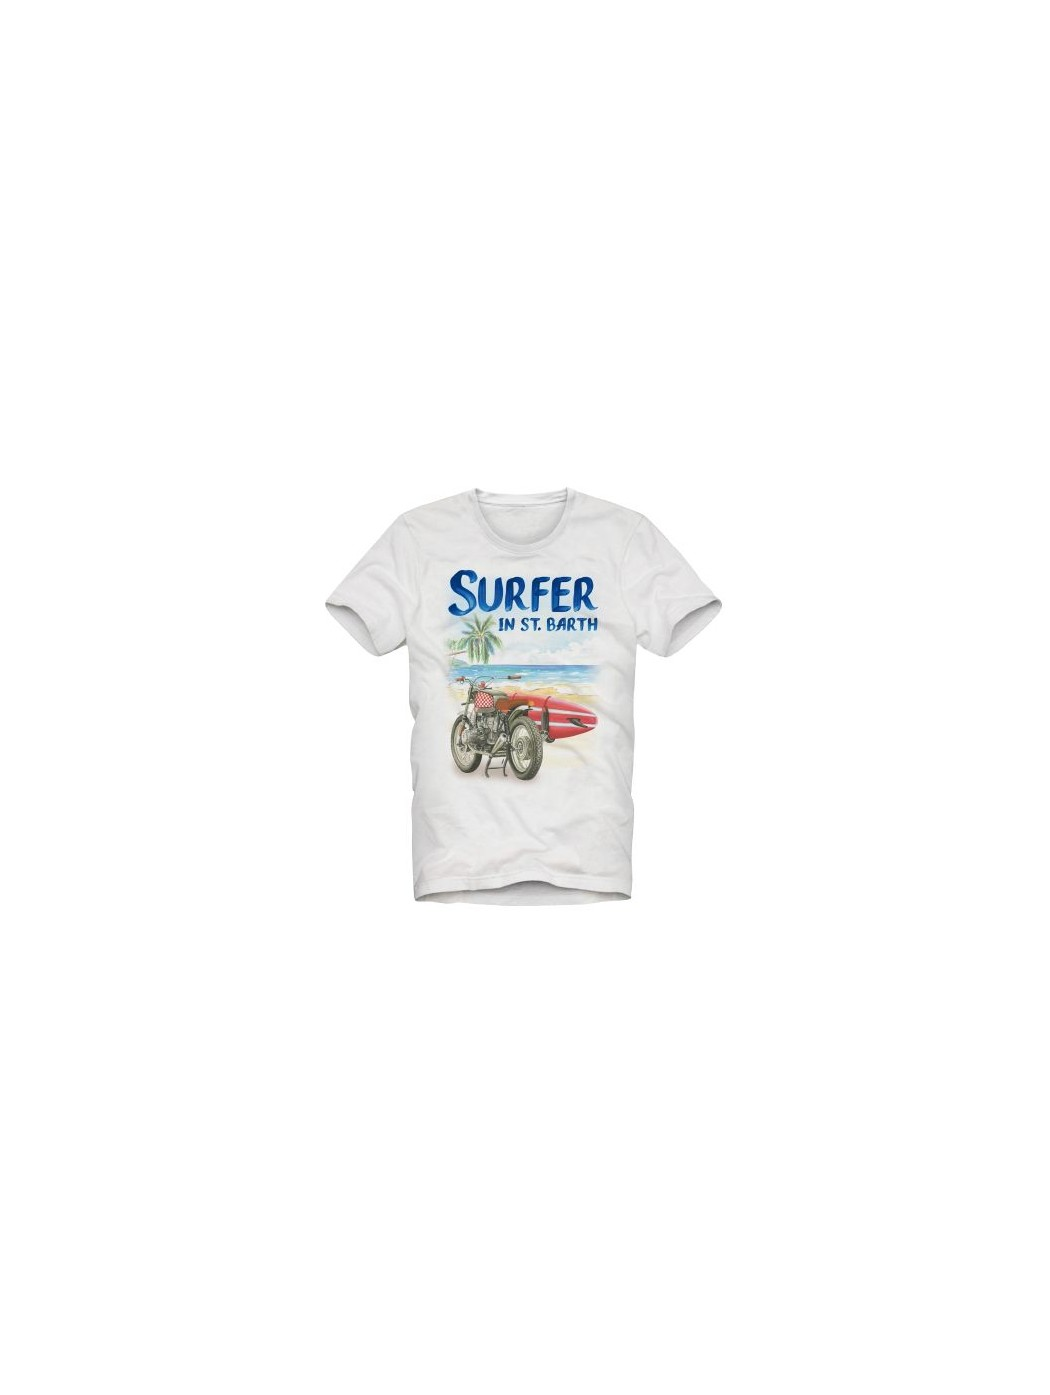 SAINTBARTH MC2 SURFER 01 T-SHIRT